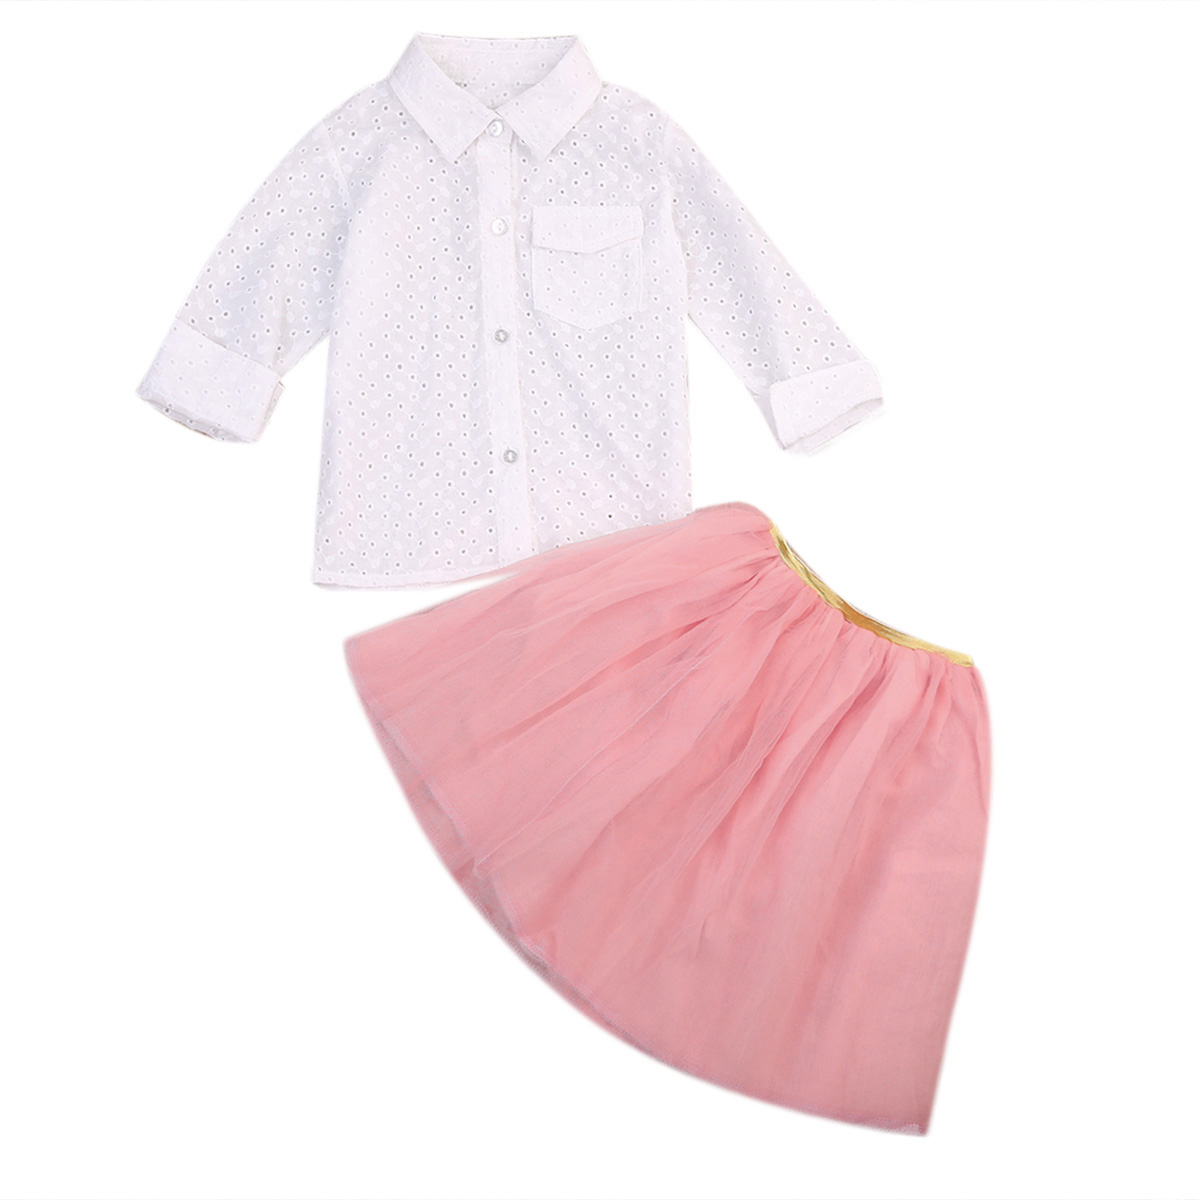 Toddler Kid Baby Girl Clothes Long Sleeve TShirt Top + Ruffle Tutu Skirt Outfit Set 2PCS Kids Clothing Set